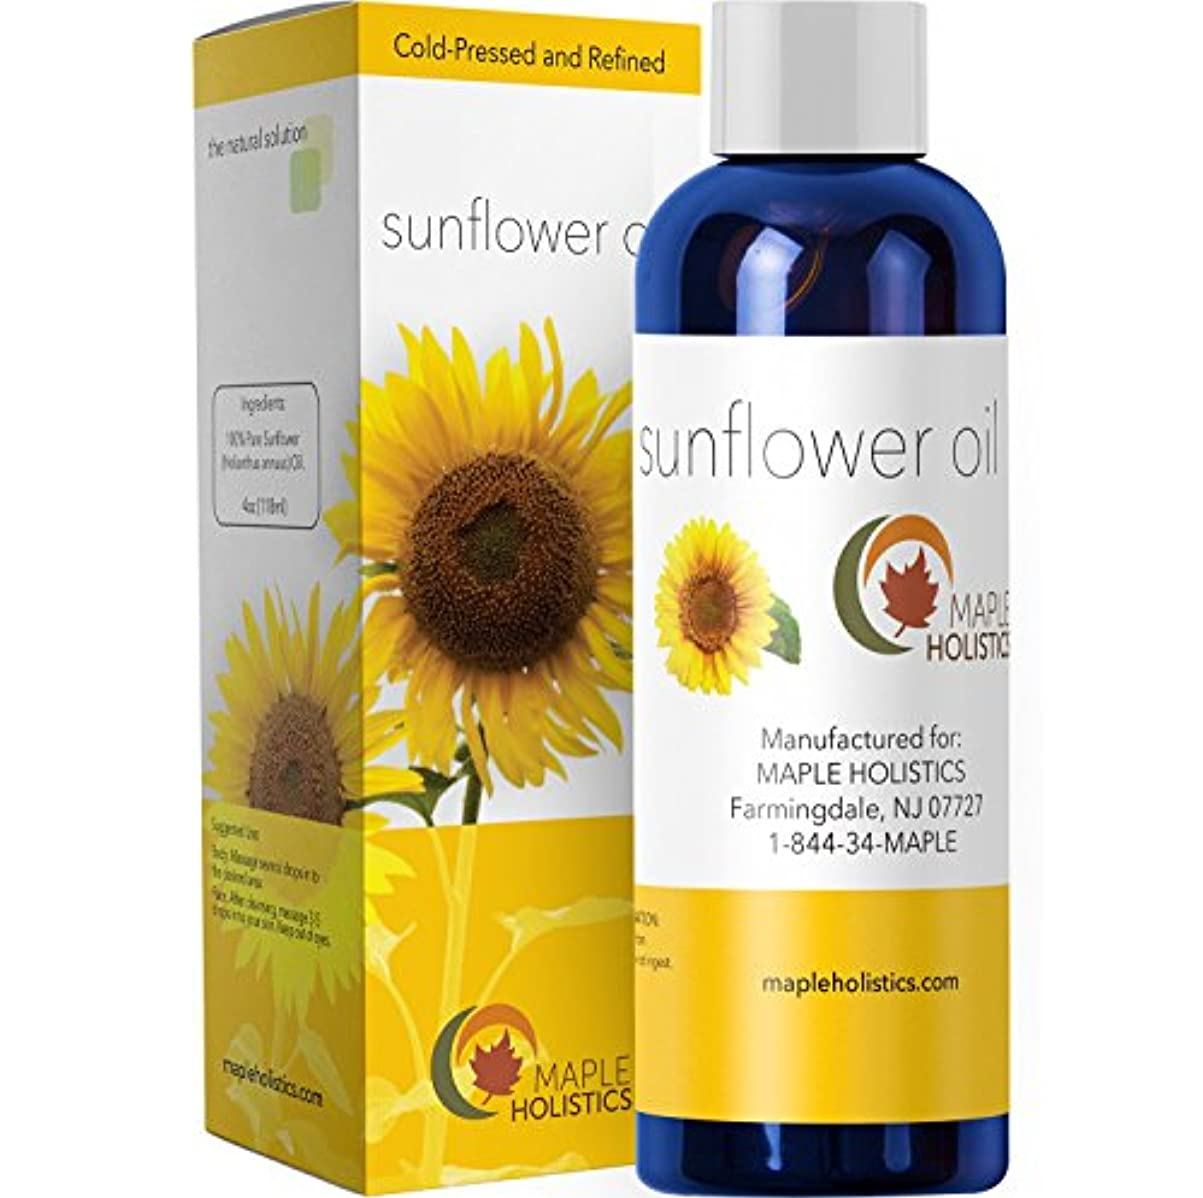 ディンカルビル人柄殺しますPure Sunflower Seed Oil - Cold Pressed for Greatest Efficacy - Use on Hair, Skin & Body for Advanced Hydration...